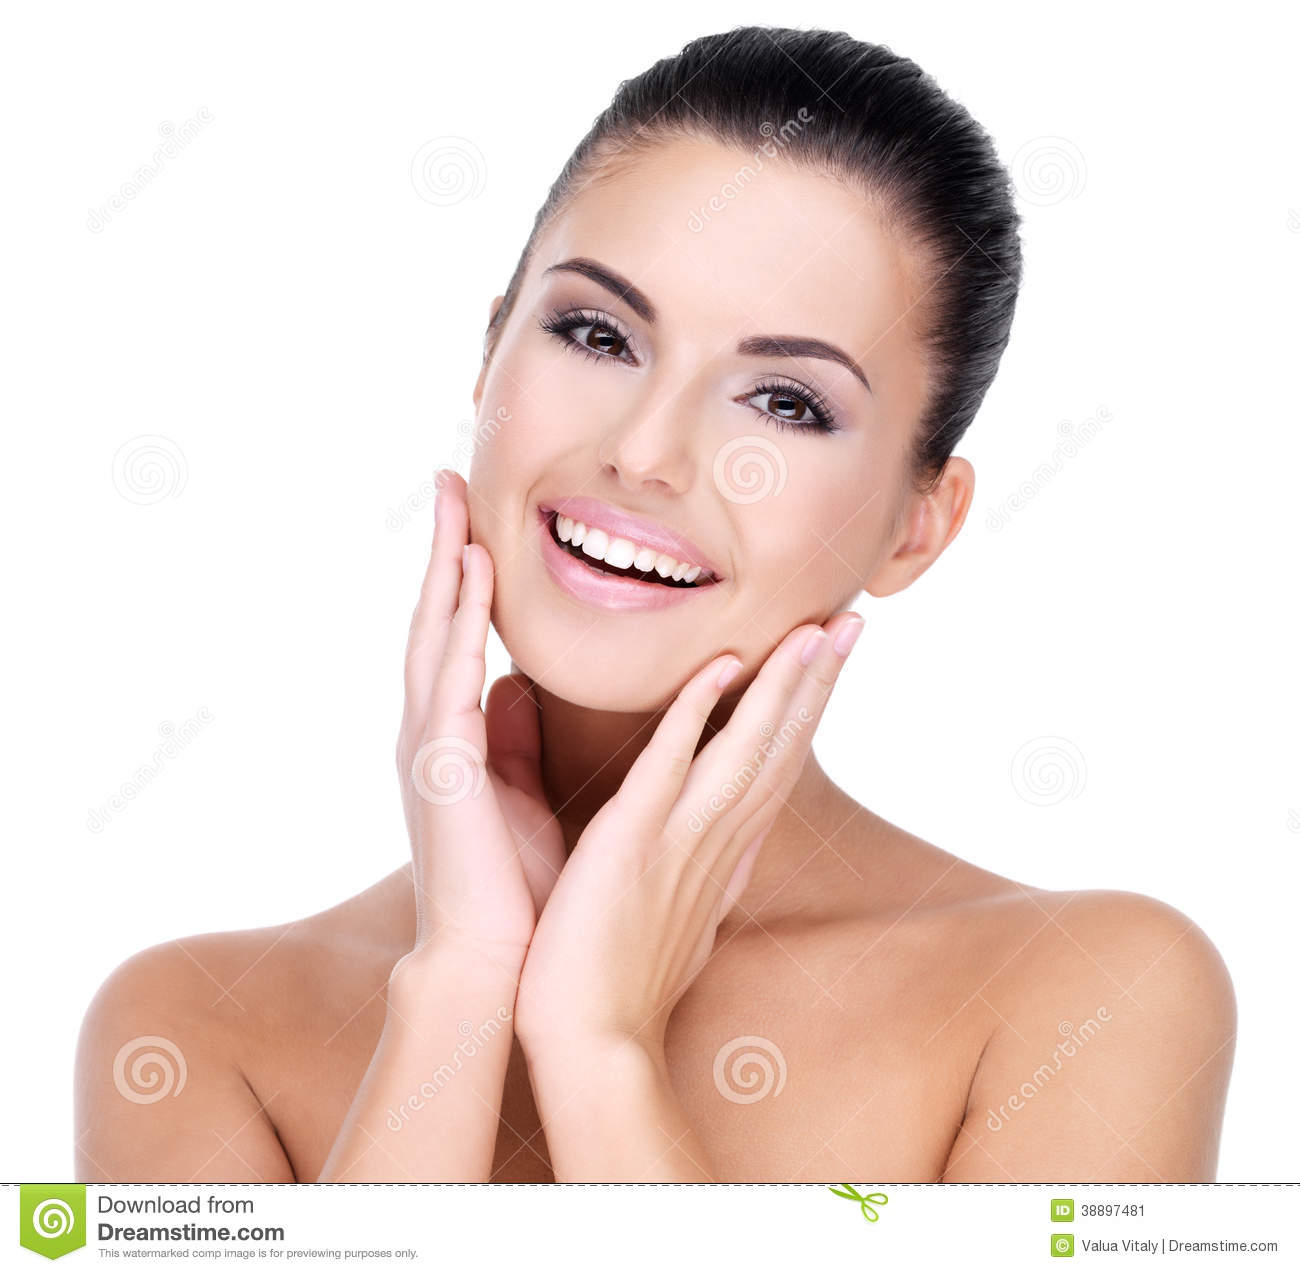 Beautiful face of smiling woman